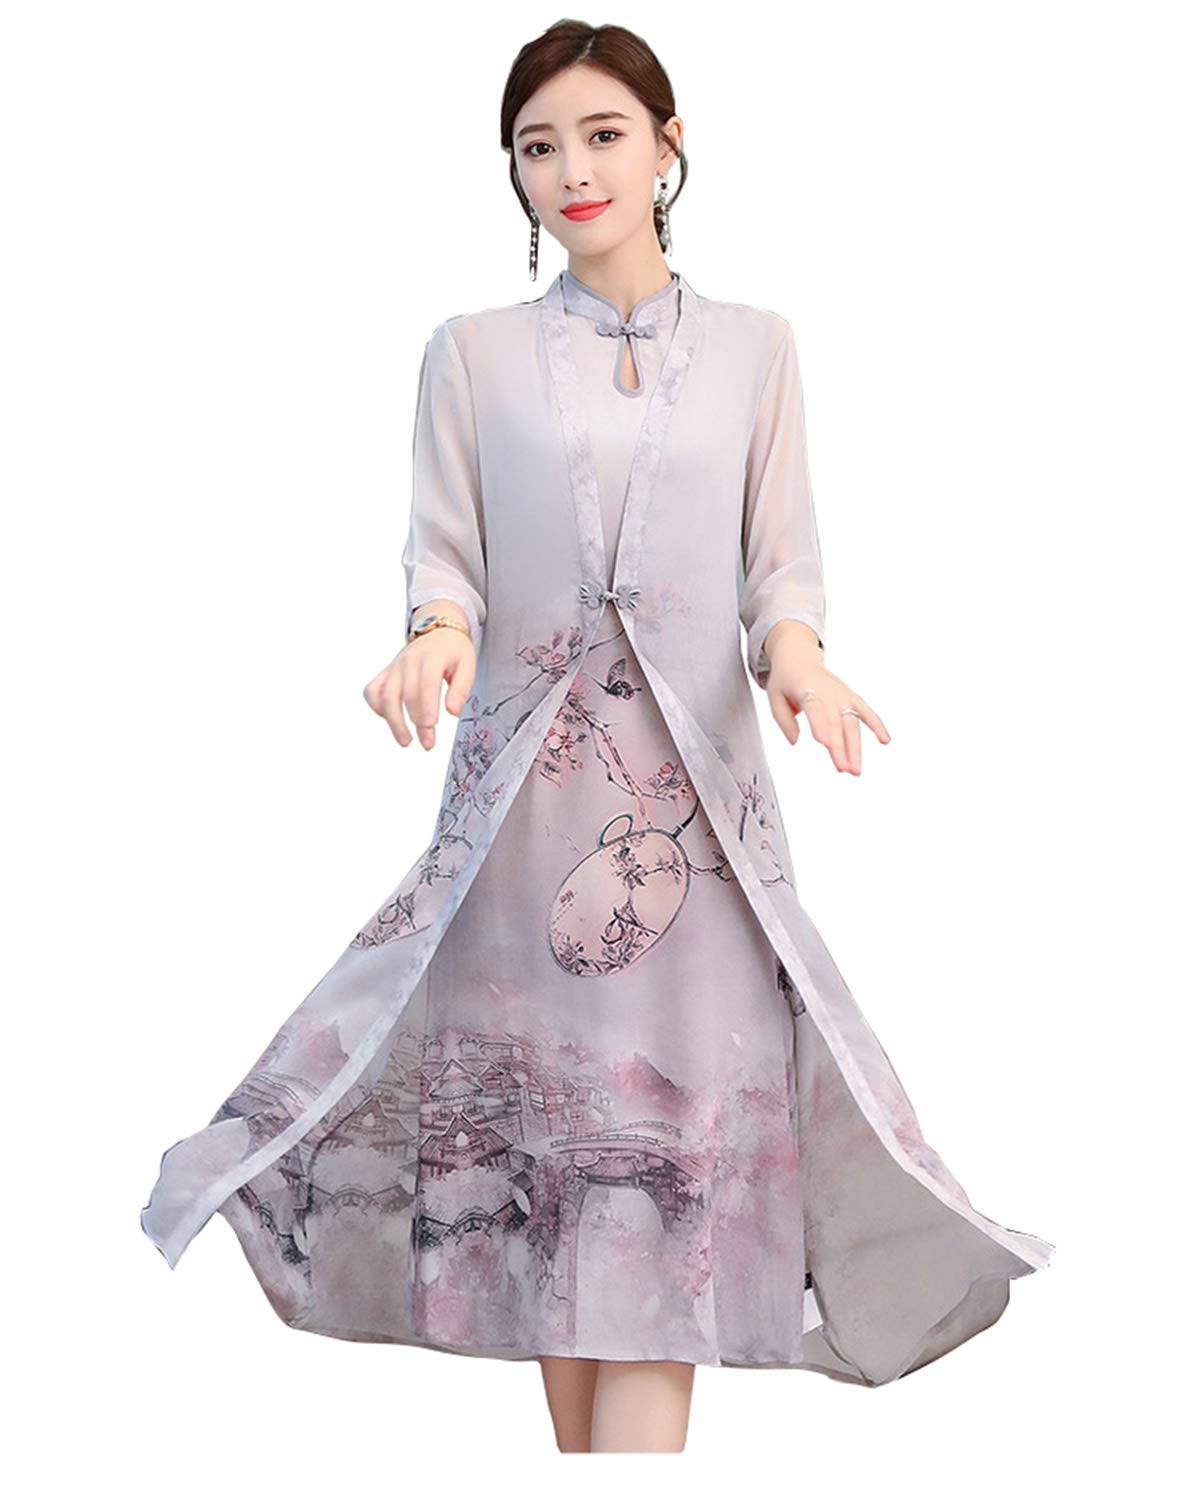 Aries Tuttle Two Pieces Chinese Style Women's Birthday Party Cheongsam Dress Retro Gown Qipao Hanfu Tang Suit with Robe Gray